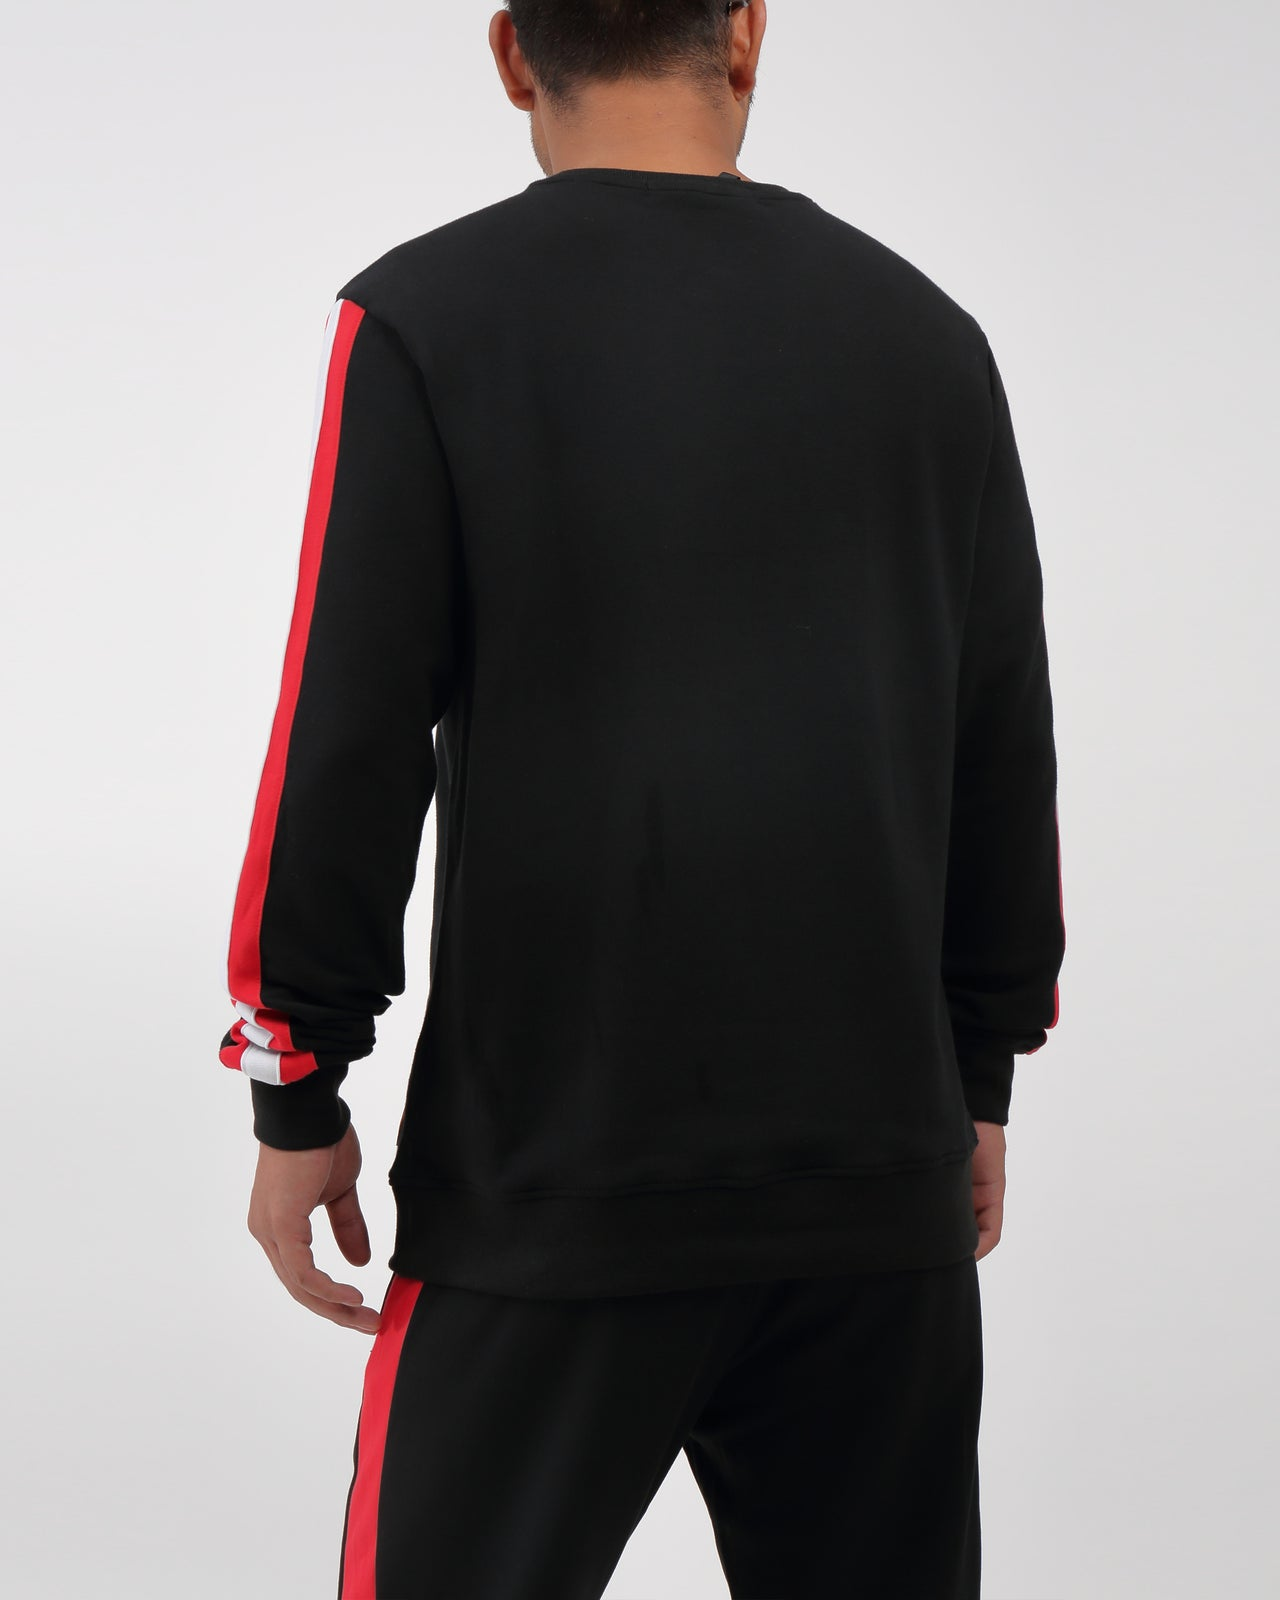 The Meatball Future Classic Crew Sweatshirt - Color: Black | Black